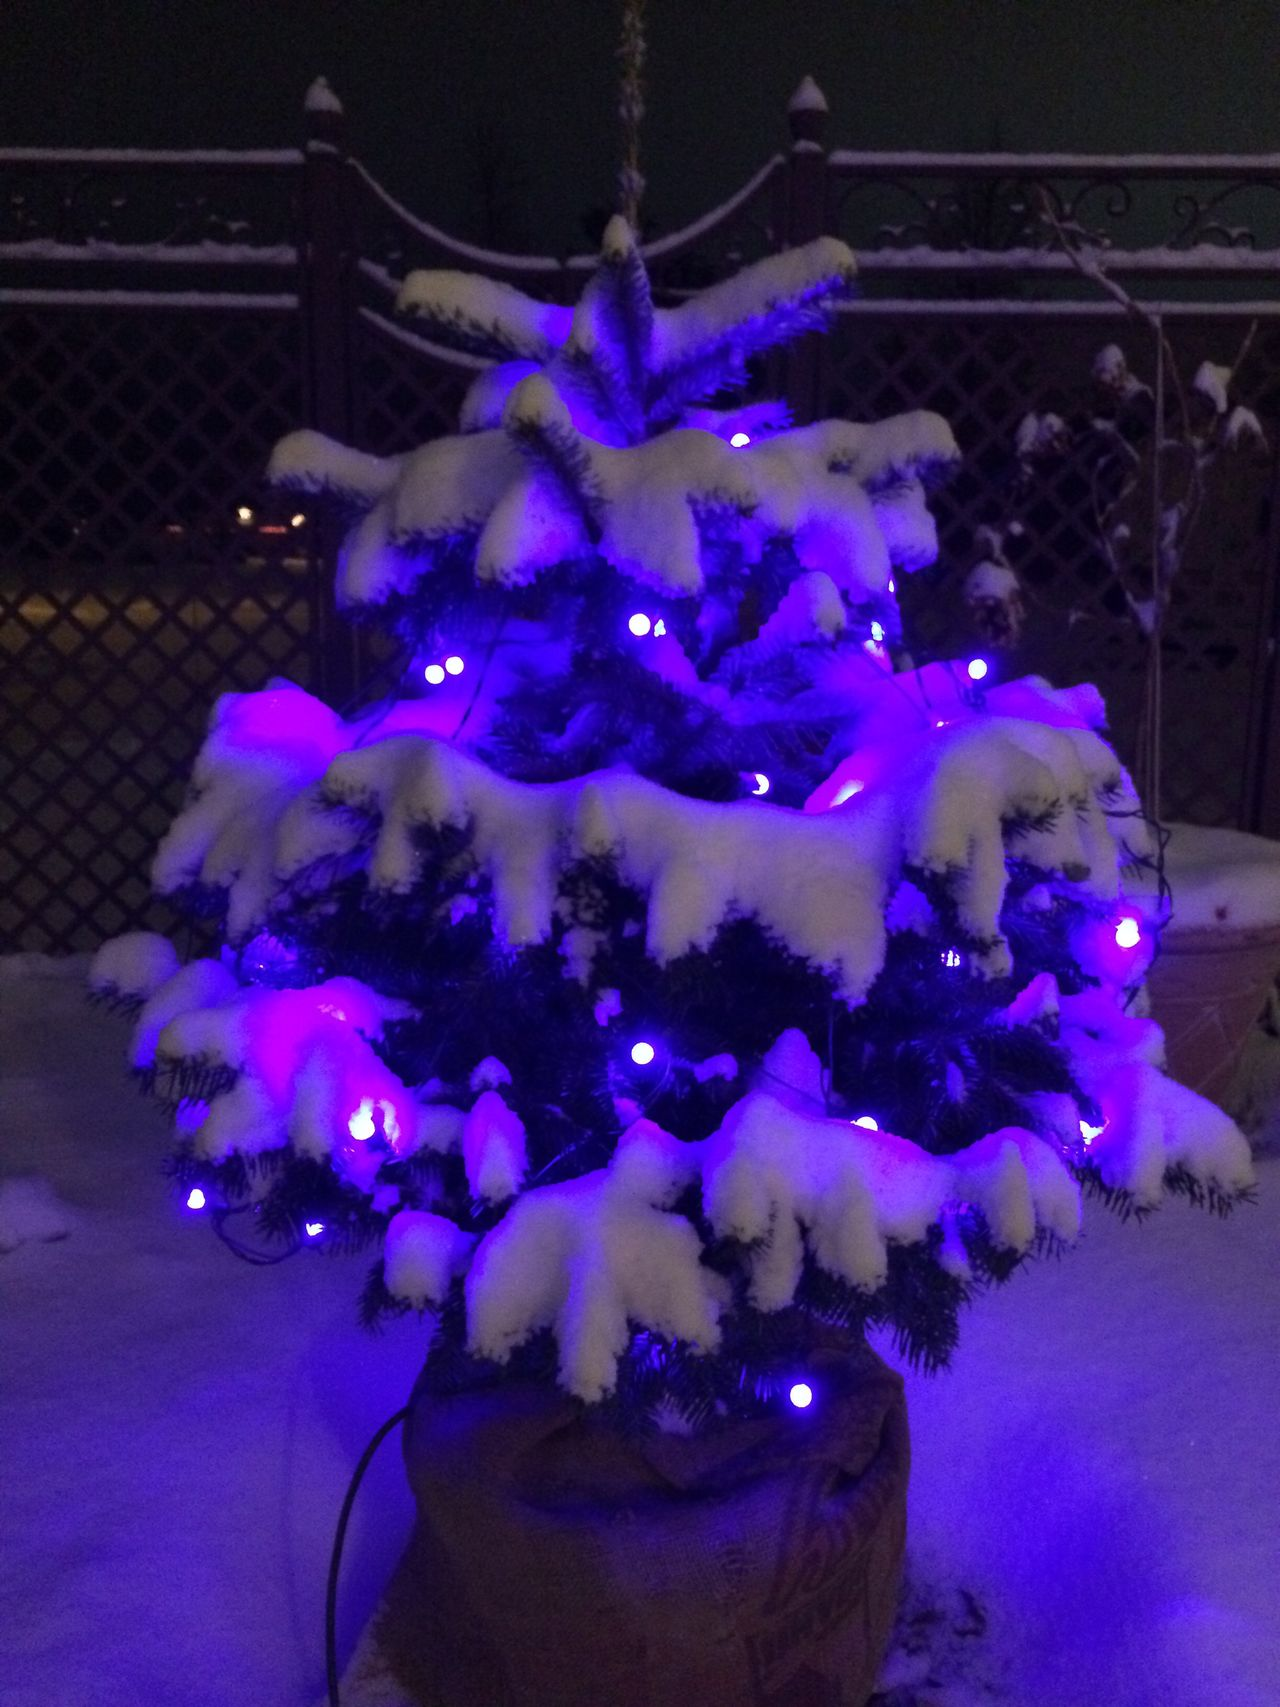 Illuminated Night Celebration Christmas Lights Christmas Tree Live Christmas Tree Winter Tree No People Light And Shadow Cold Temperature Snow Snow ❄ Beauty In Nature Nature On Your Doorstep Kris Tabor